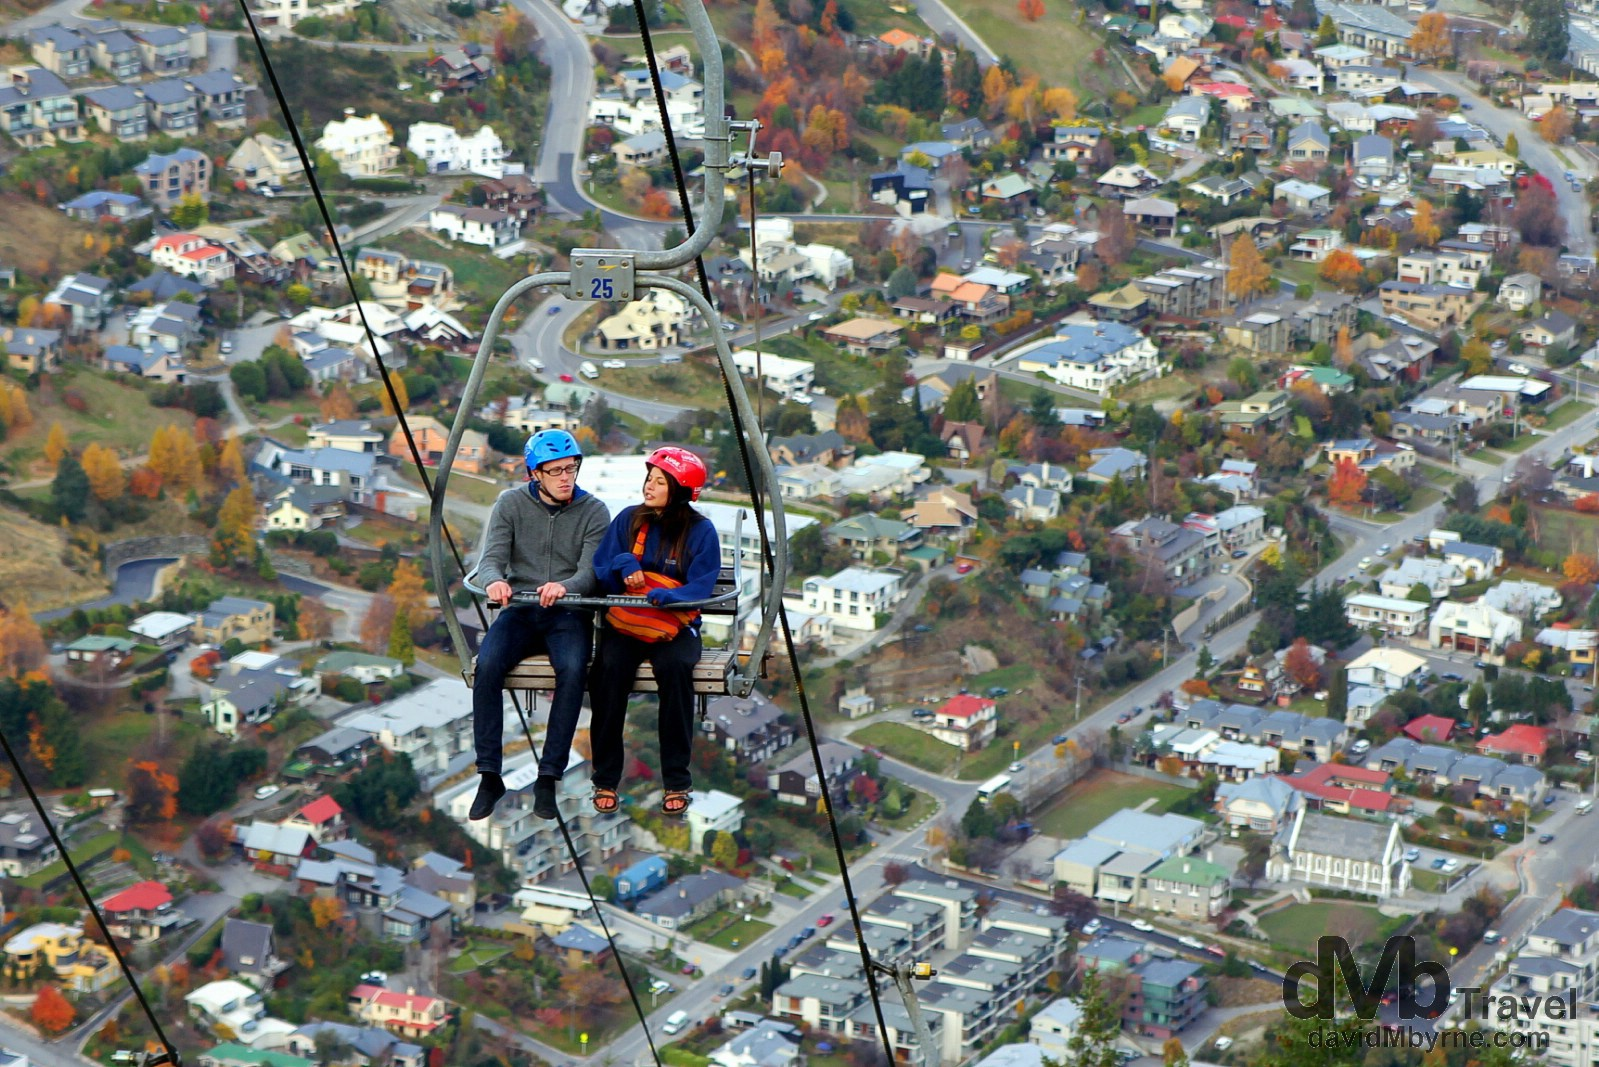 Patrons on The Luge chairlift on Bob's Peak, Queenstown, South Island, New Zealand. May 23rd 2012.